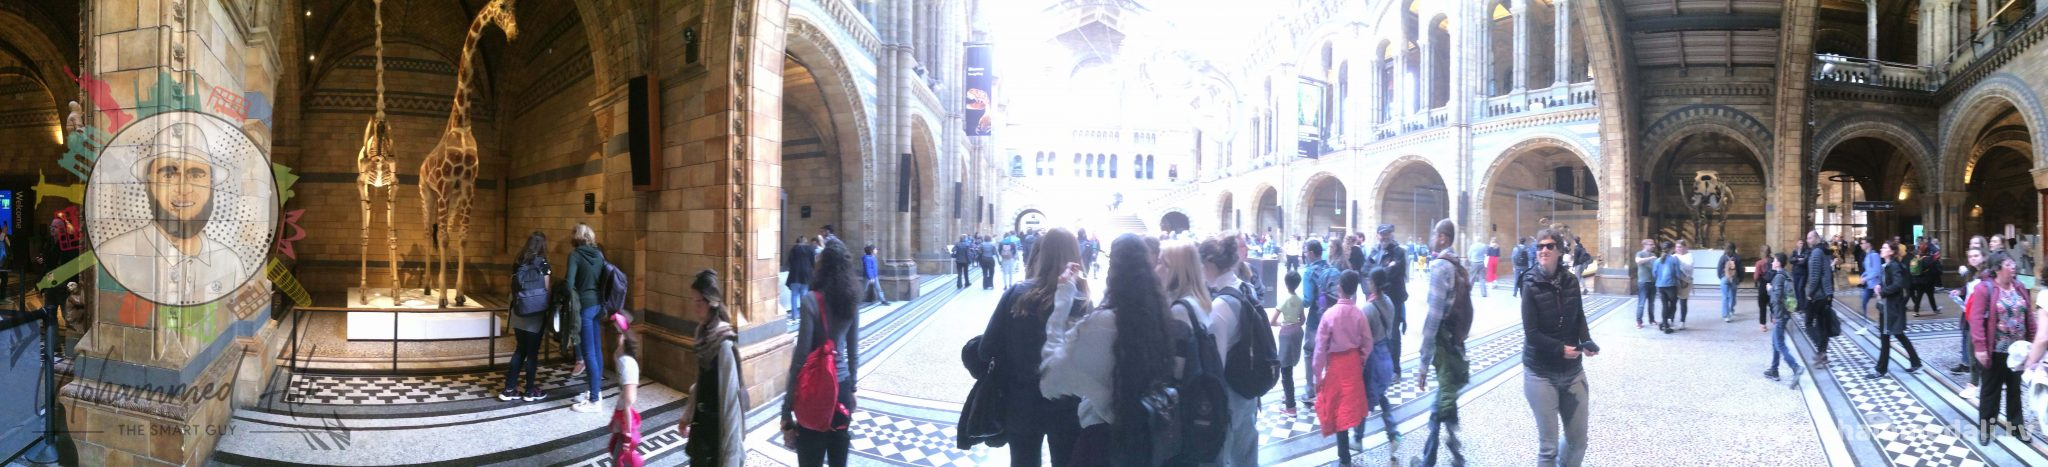 Inside Natural History Museum in South Kensington